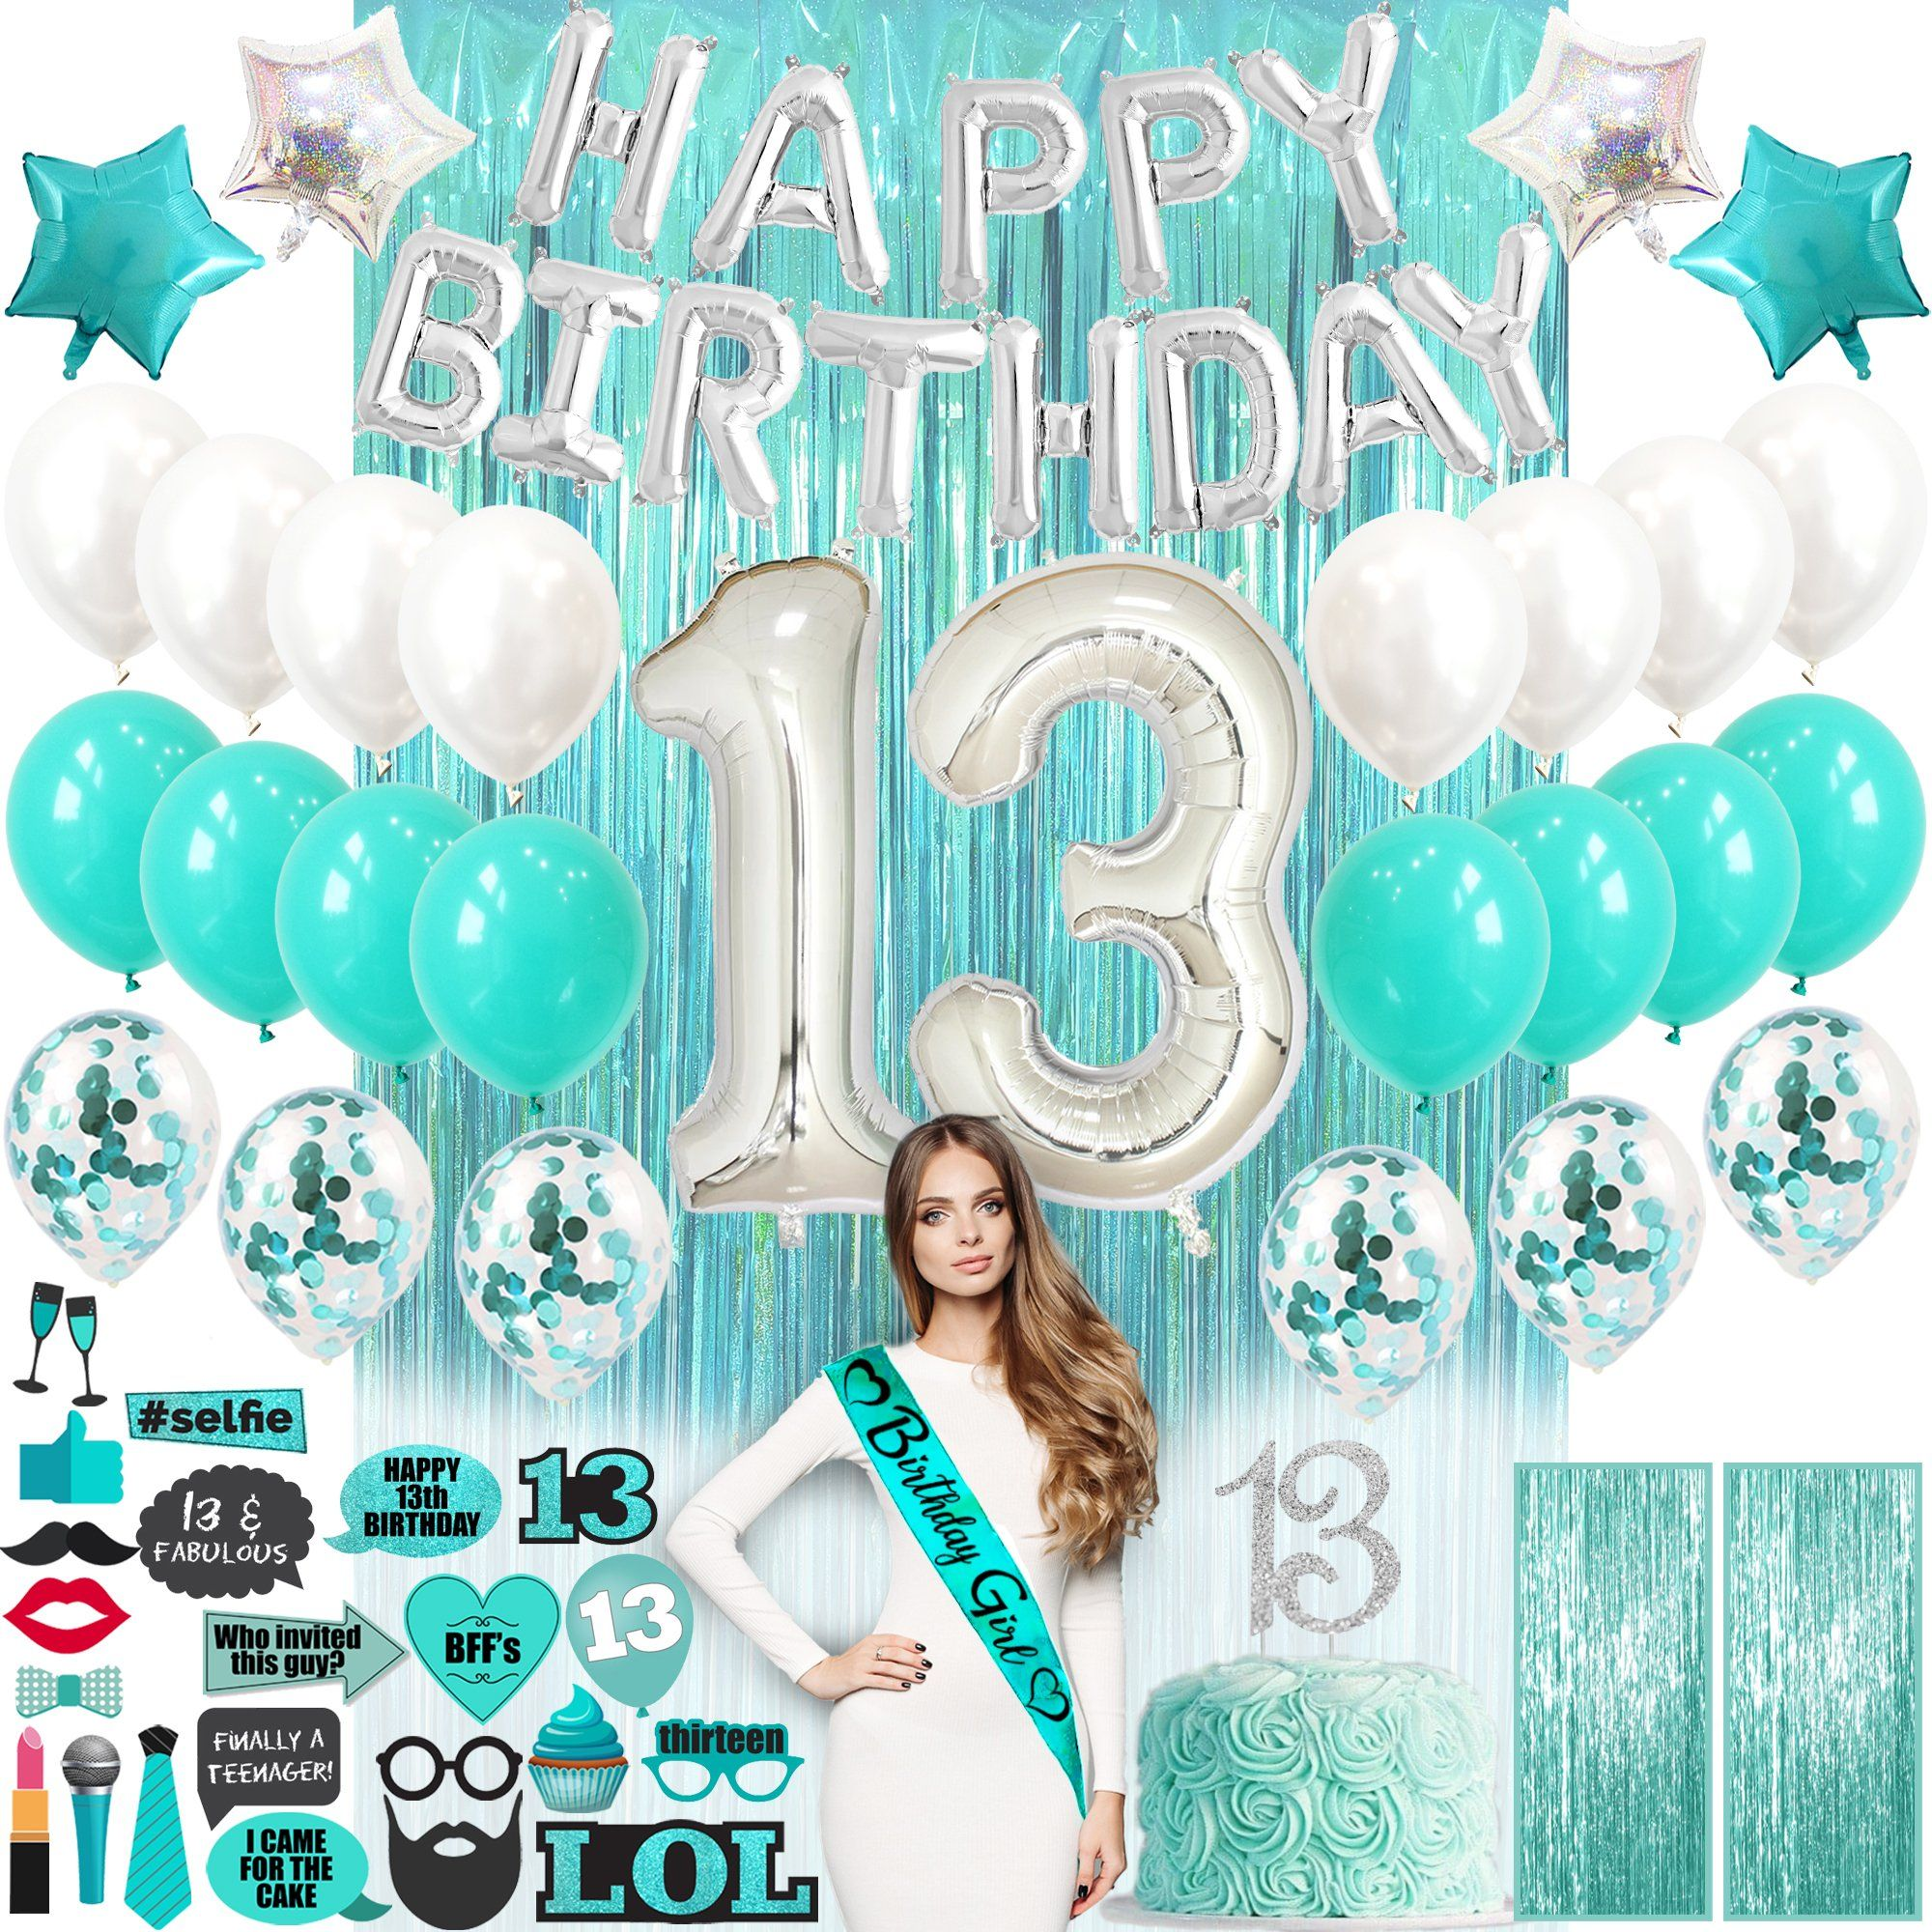 13th Birthday Decorations Teal Green In 2021 Girl Birthday Decorations Birthday Gifts For Teens 16th Birthday Gifts For Girls